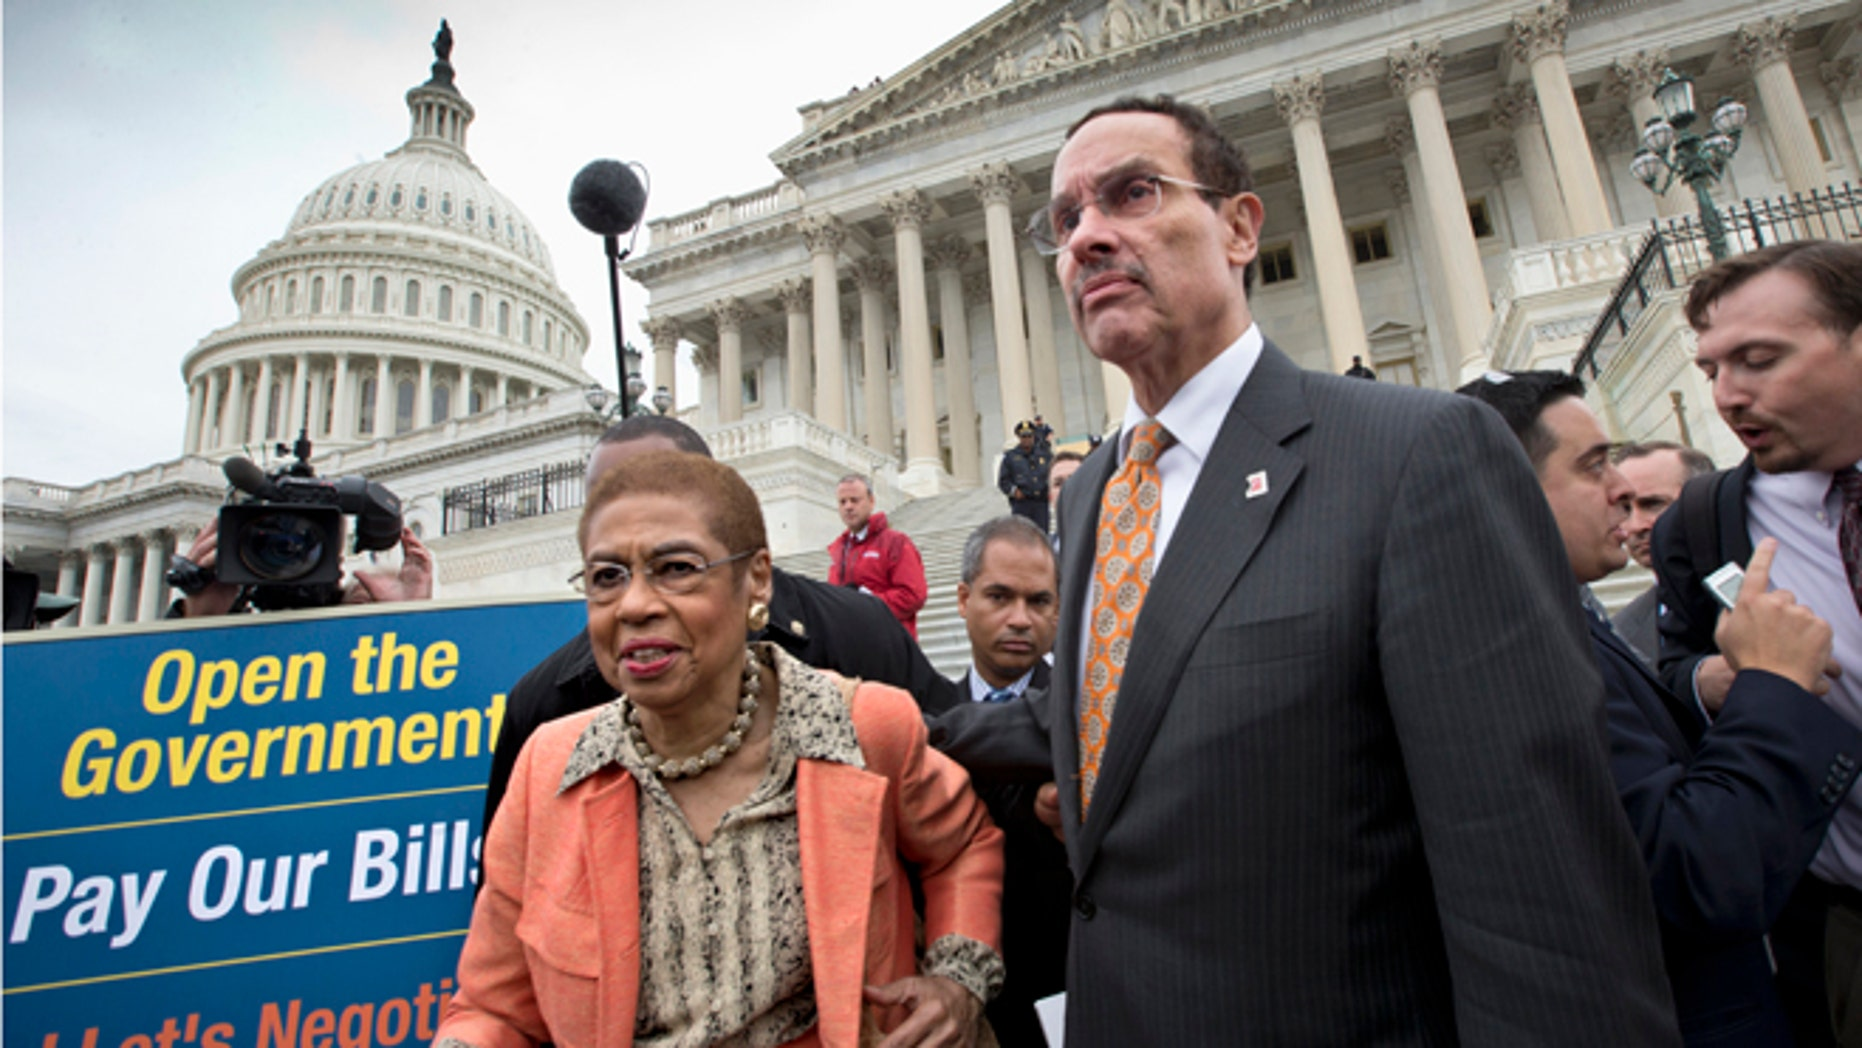 Oct. 9, 2013: Washington Mayor Vincent Gray, right, and Del. Eleanor Holmes Norton, D-D.C., left, make their way through the crowd after joining a Senate Democratic press conference in Washington.